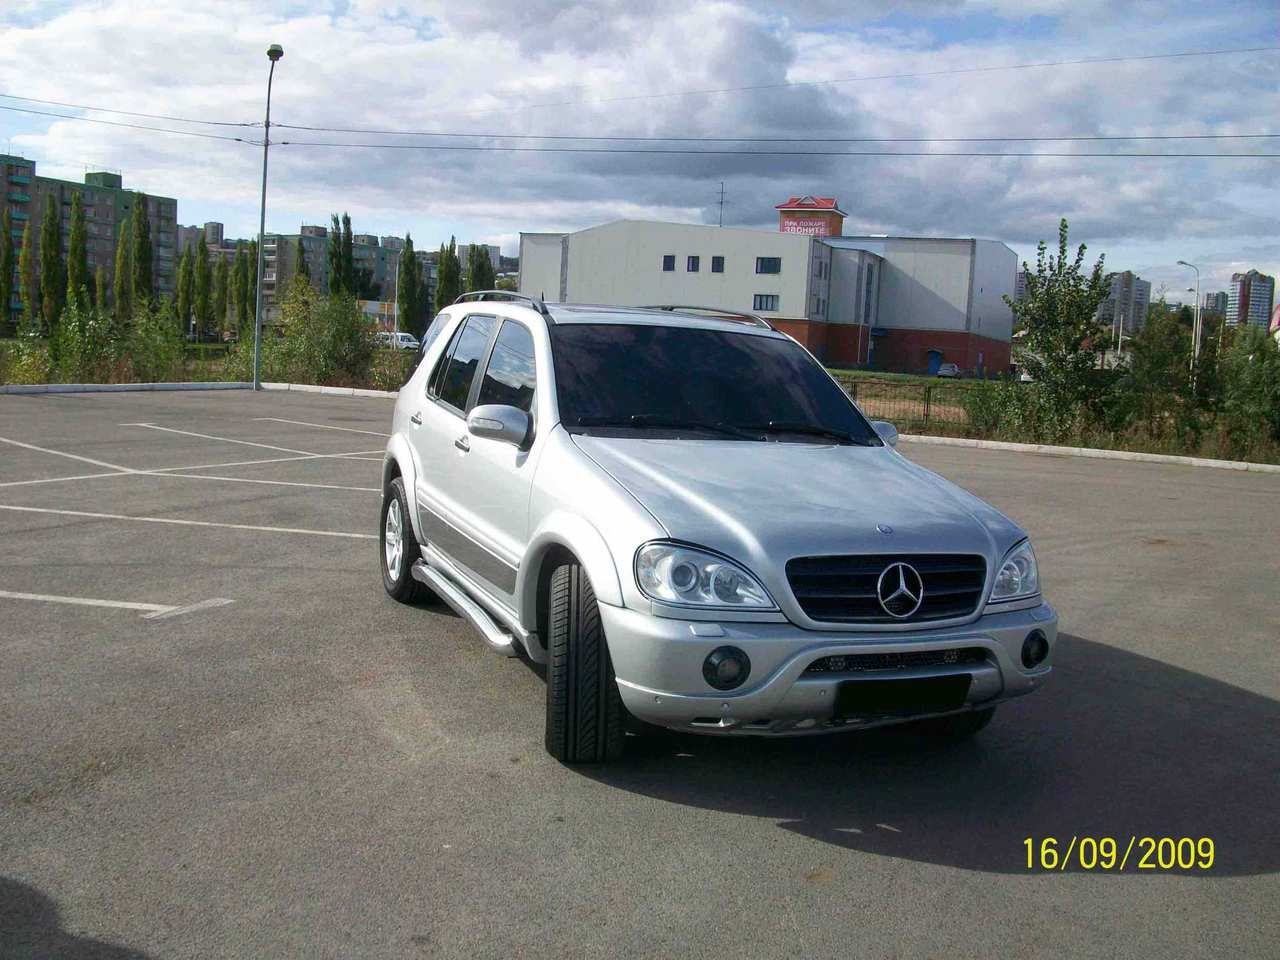 used 2002 mercedes benz ml class photos 4966cc gasoline automatic for sale. Black Bedroom Furniture Sets. Home Design Ideas